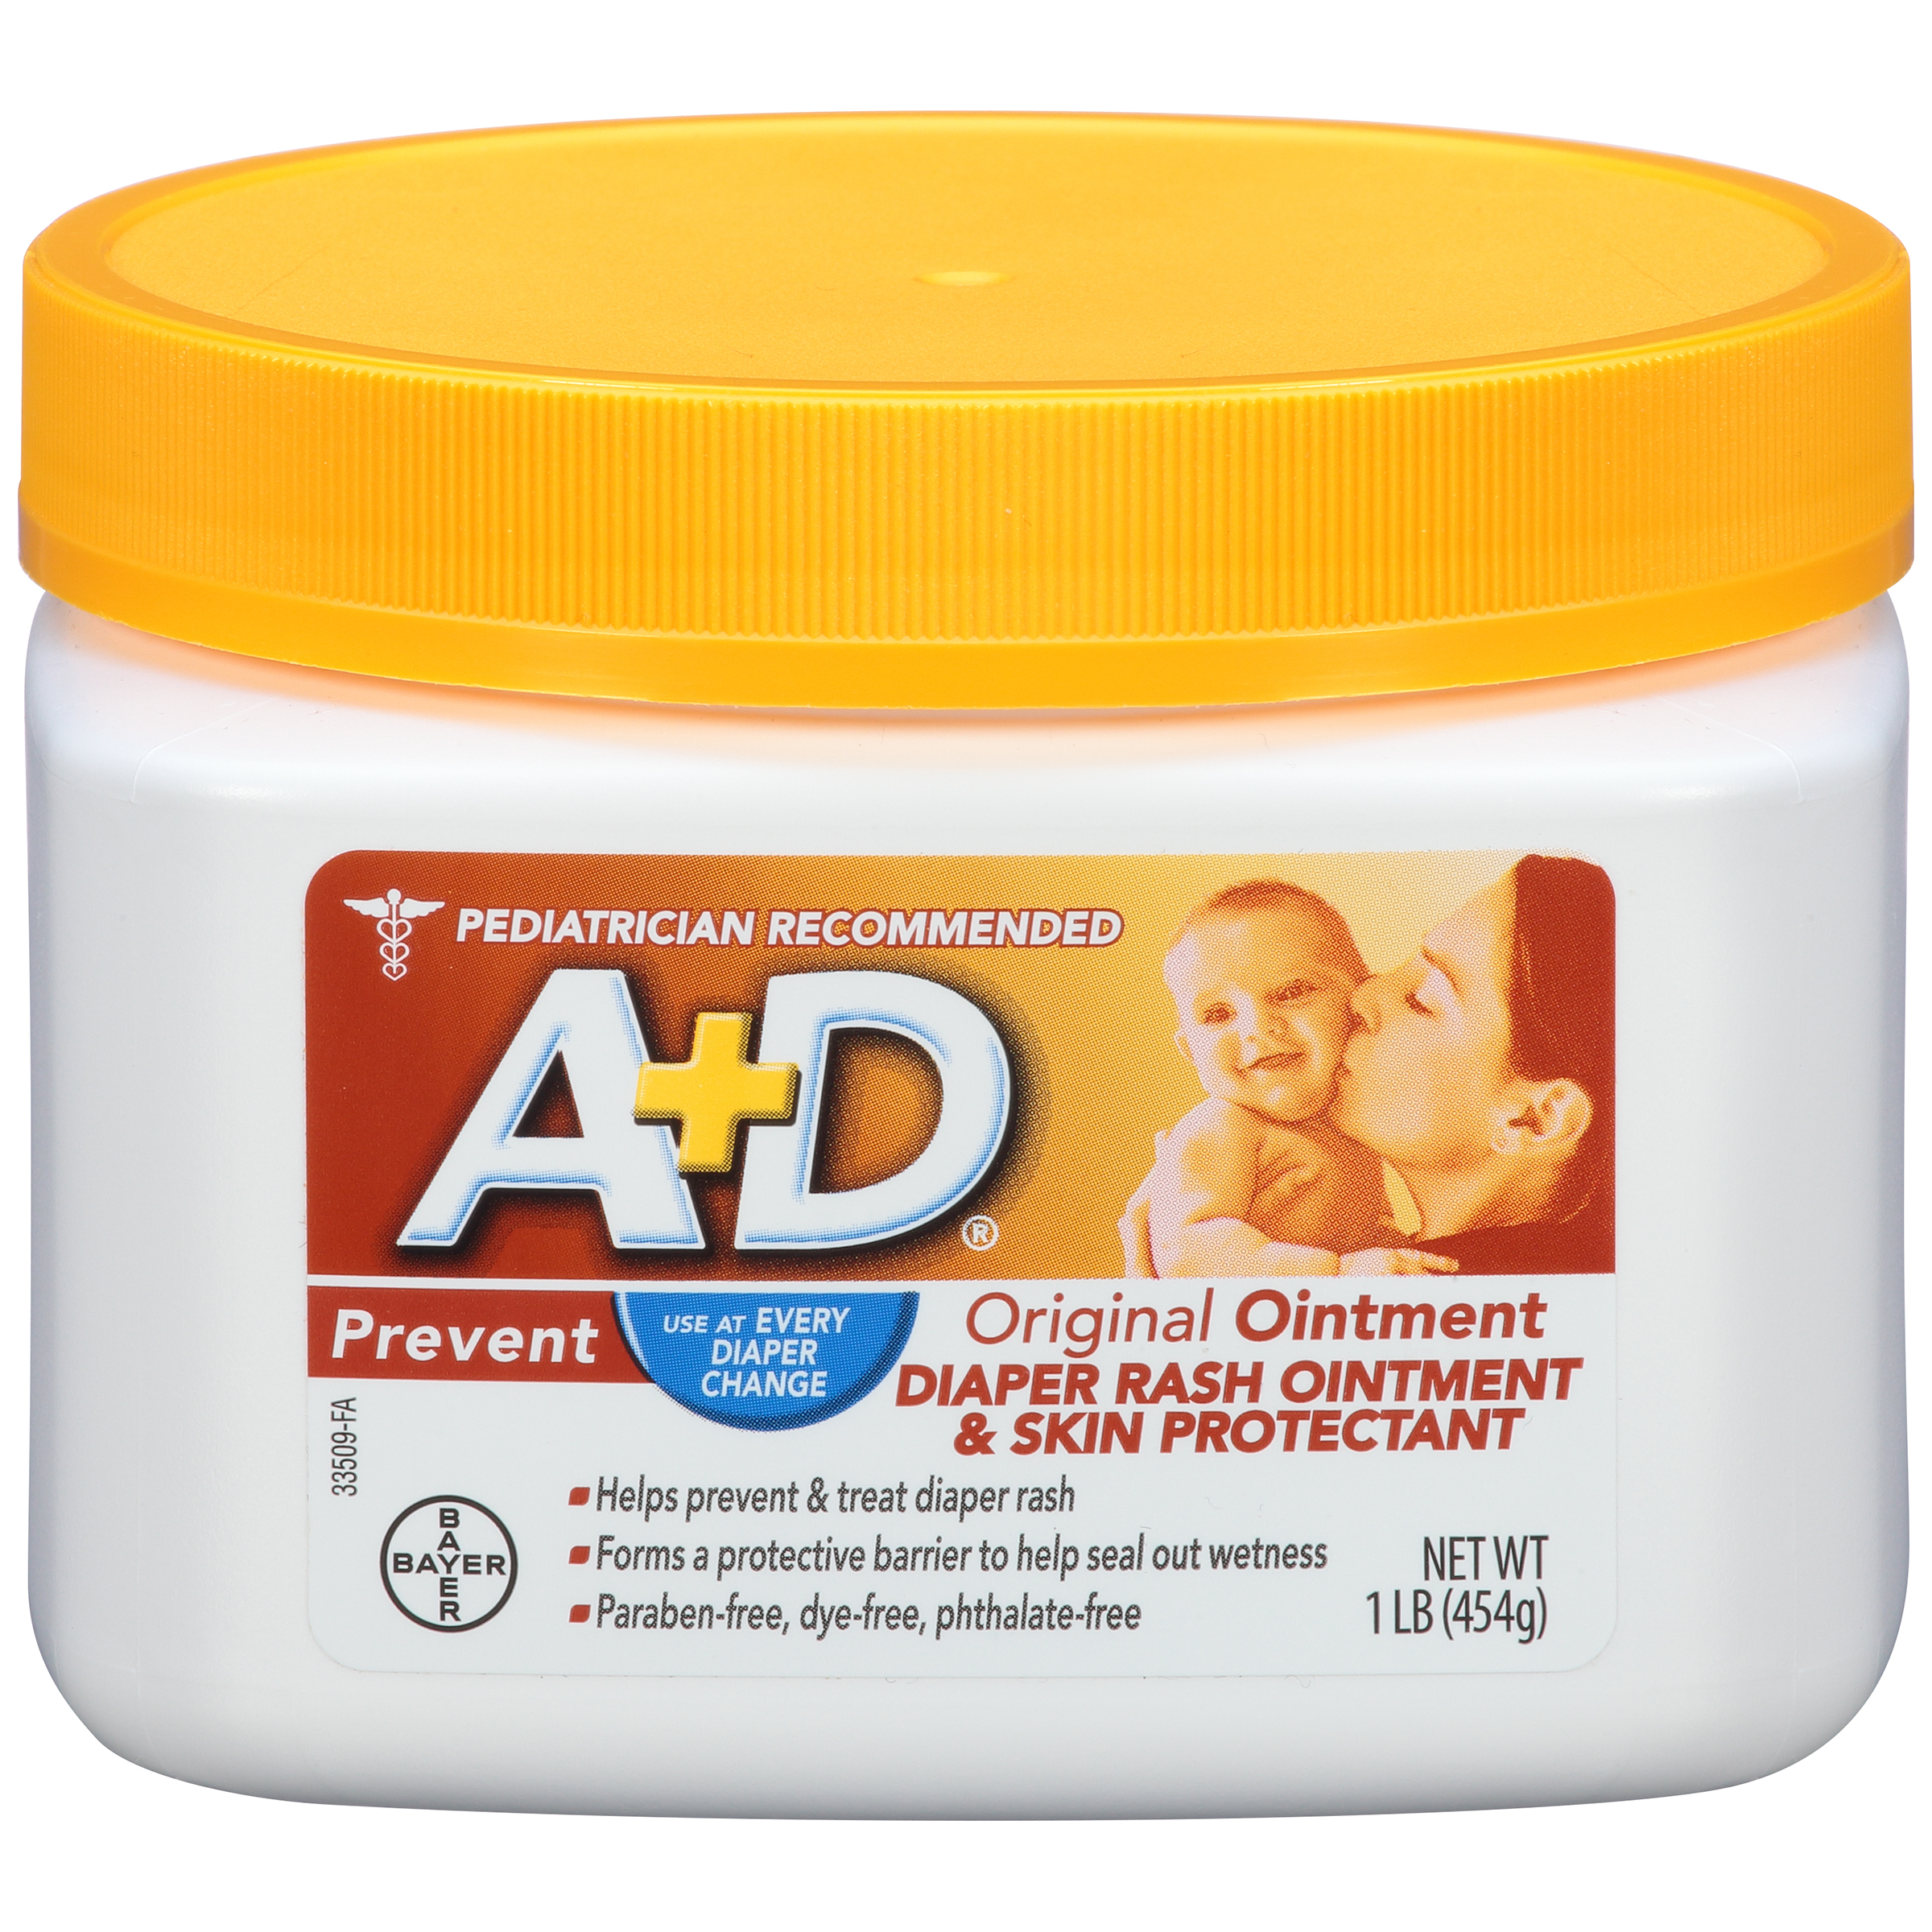 A+D Original Diaper Rash Ointment, Skin Protectant , 1 Pound Jar